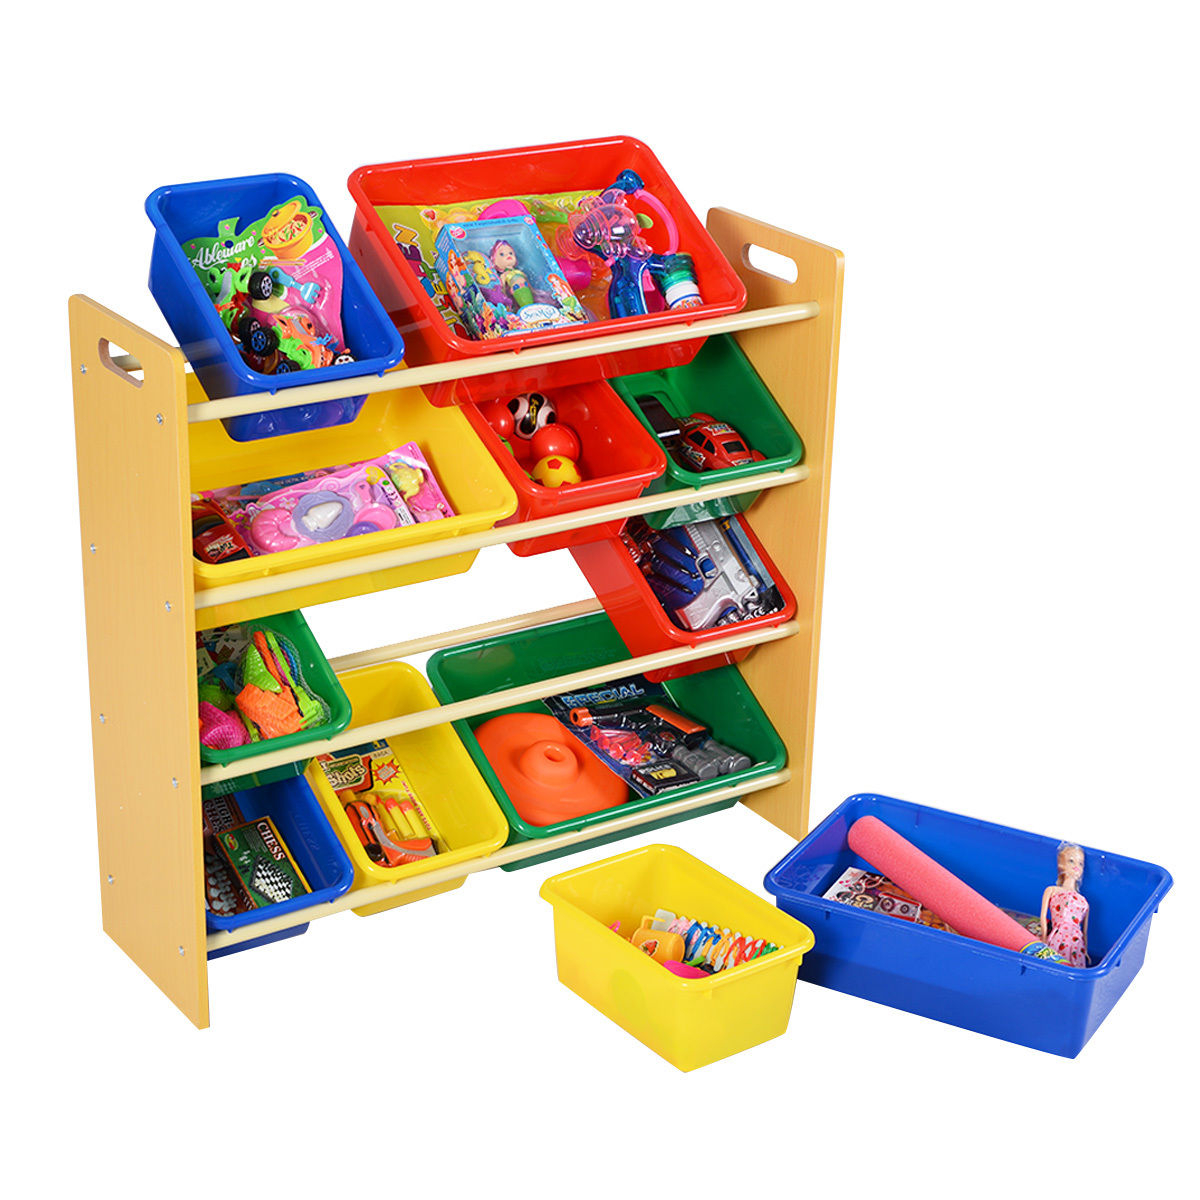 Toy Bins Organizer Storage Box Household Drawer Organizer Inserts with size 1200 X 1200